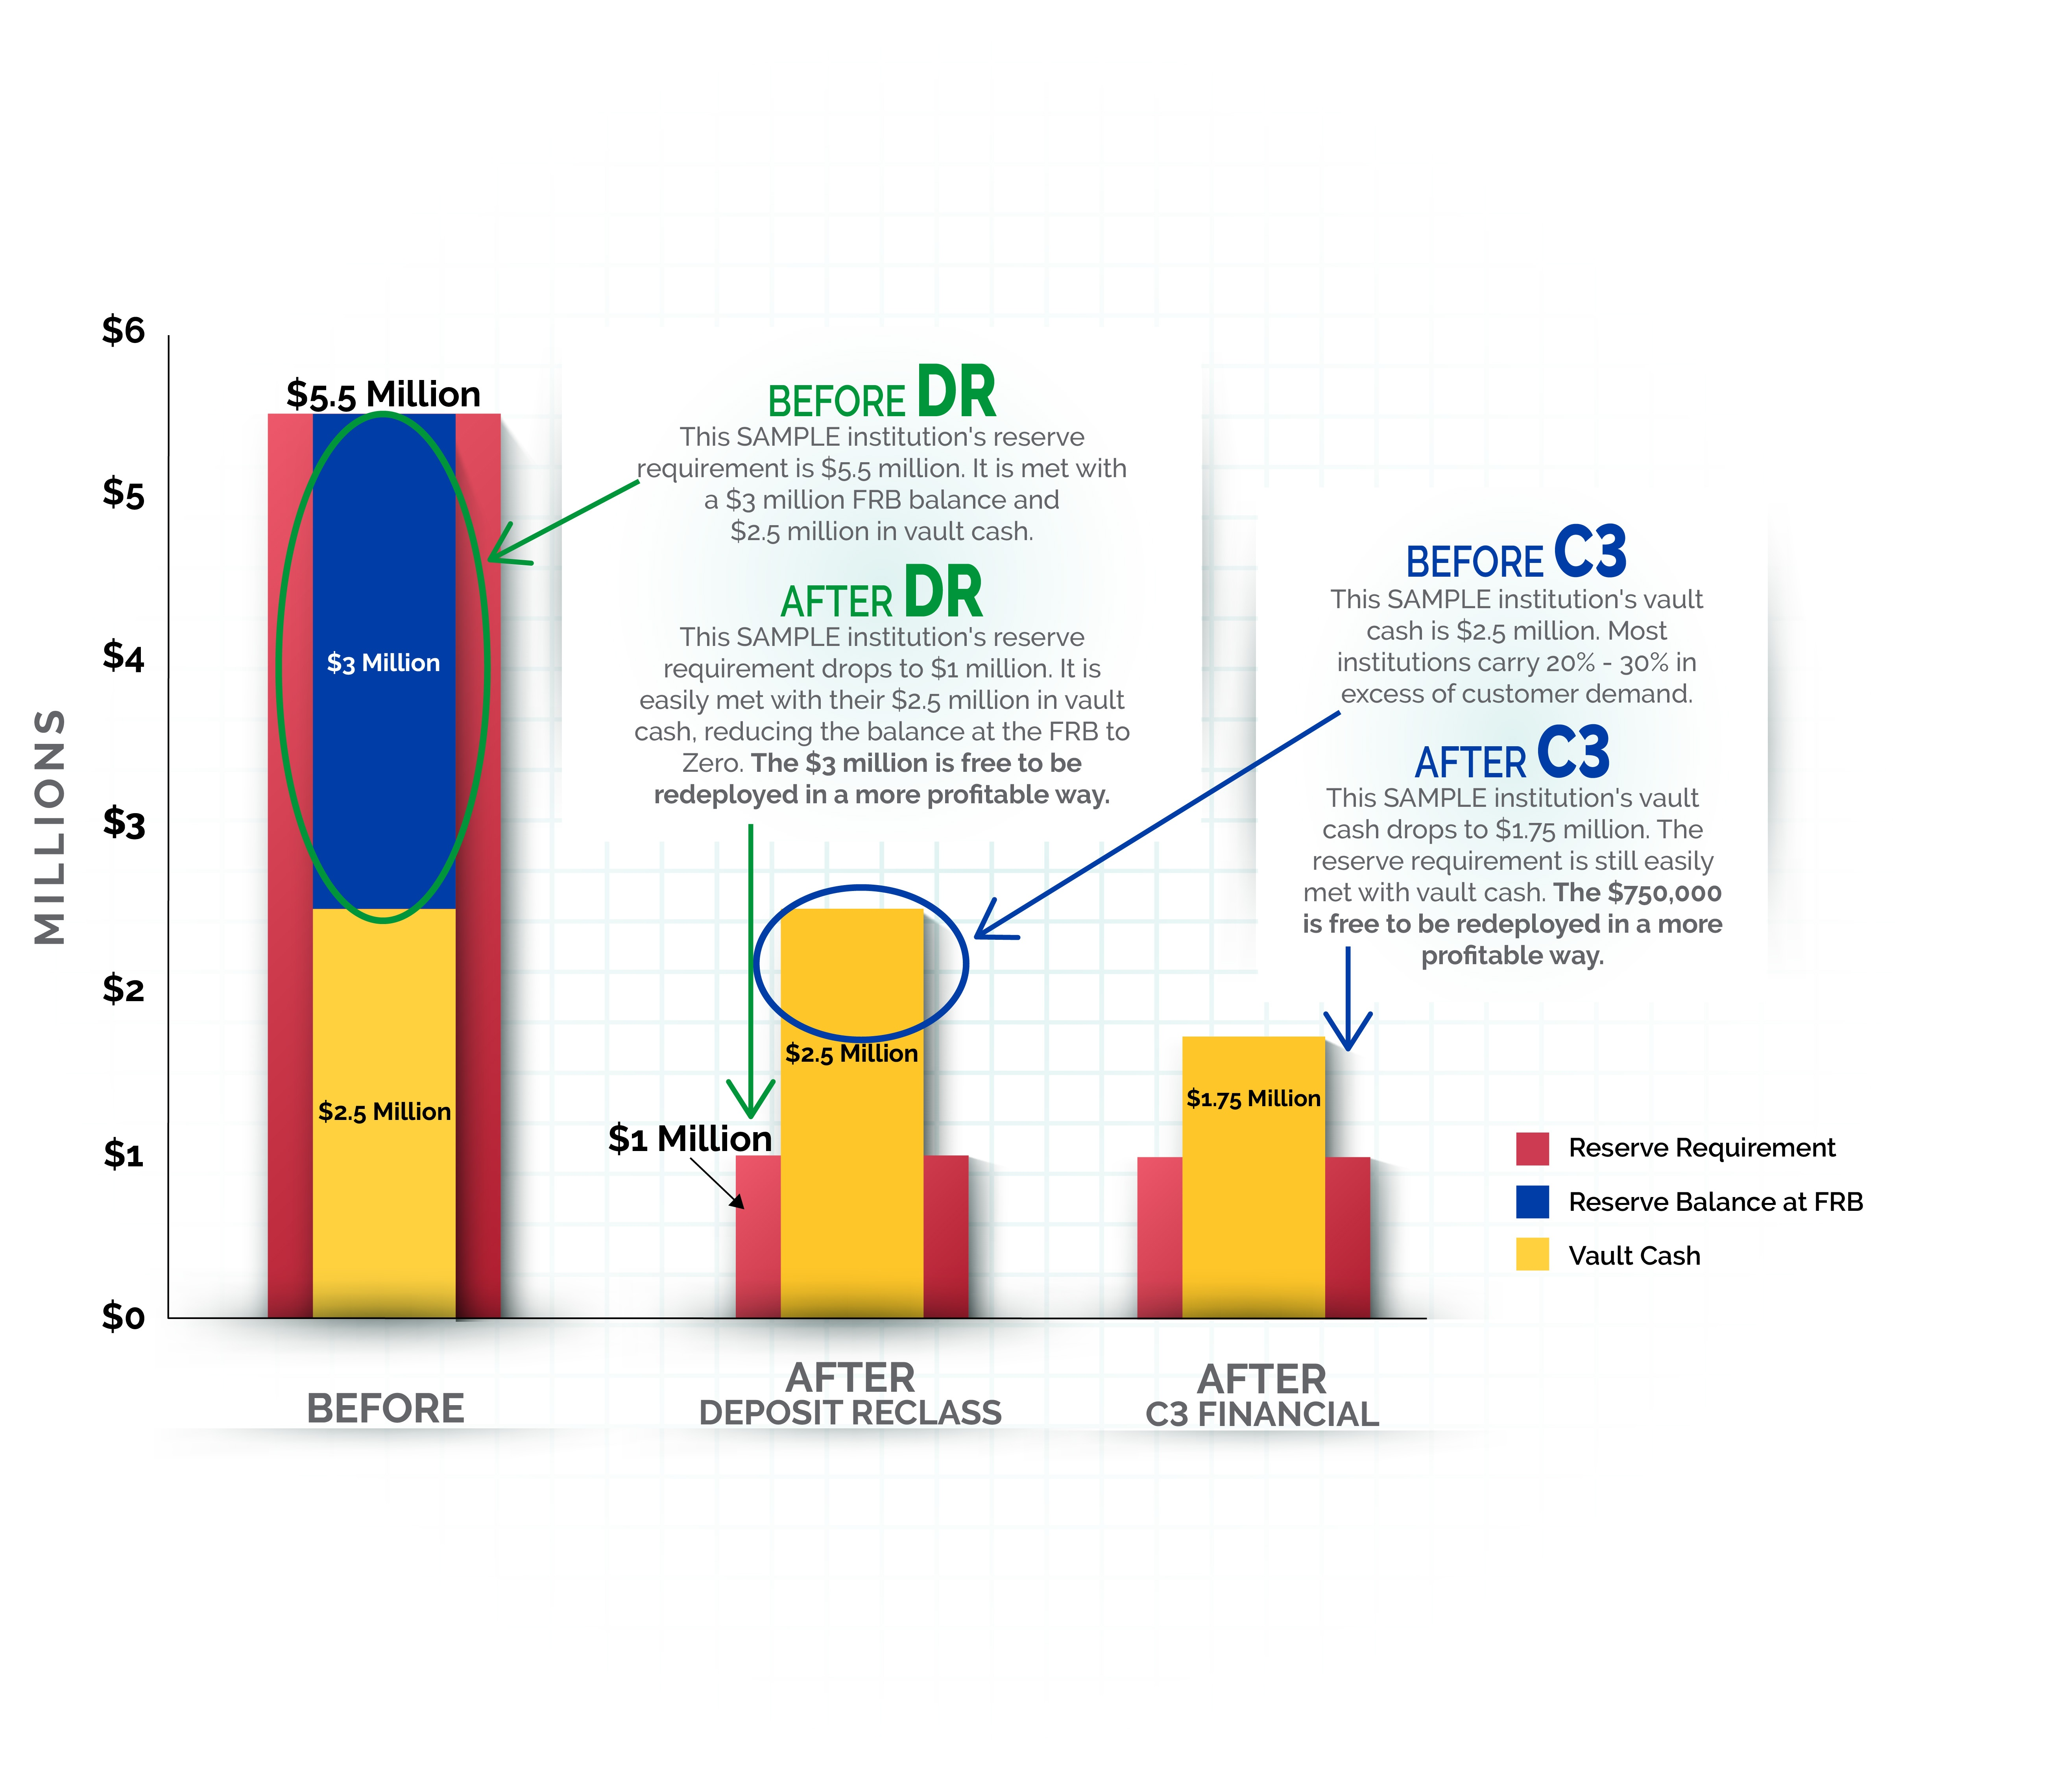 Before and After Graph - Deposit Reclassification and C3 Financial